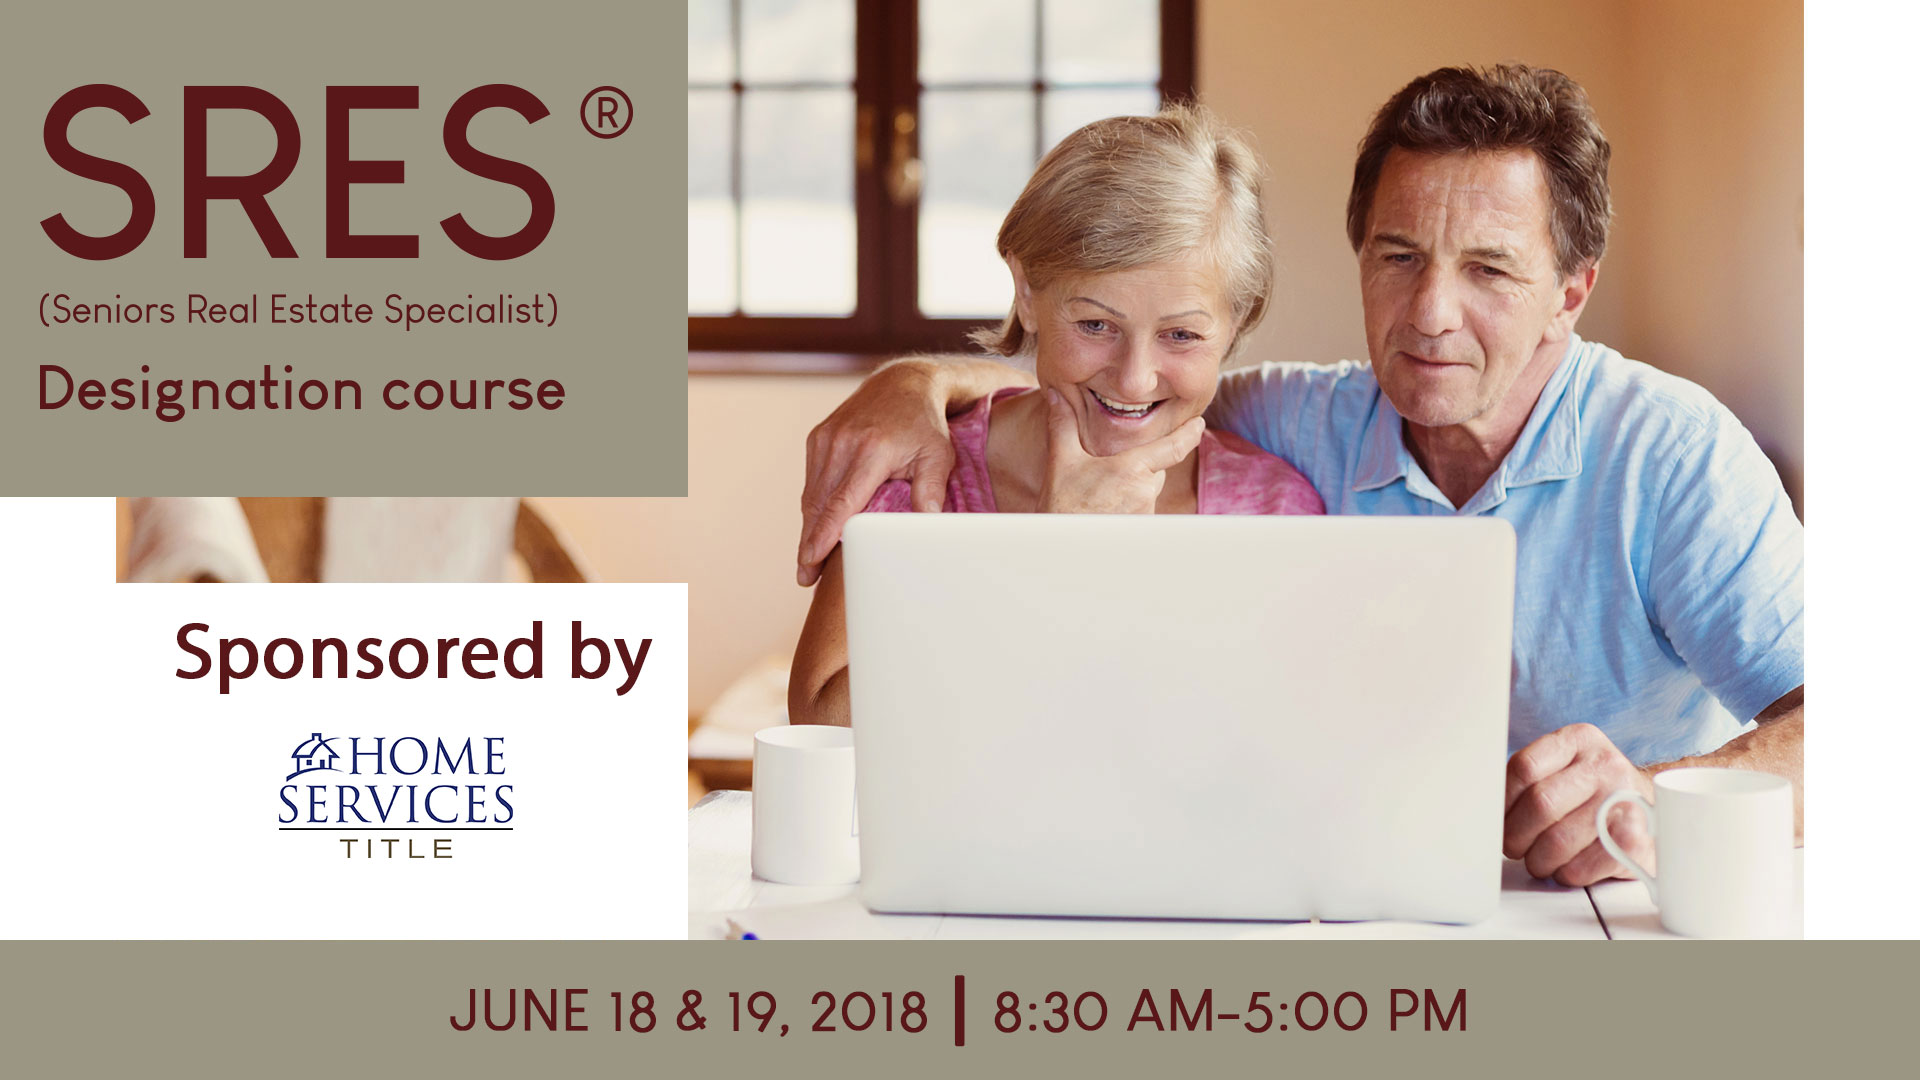 SRES Designation Course, June 18 & 19